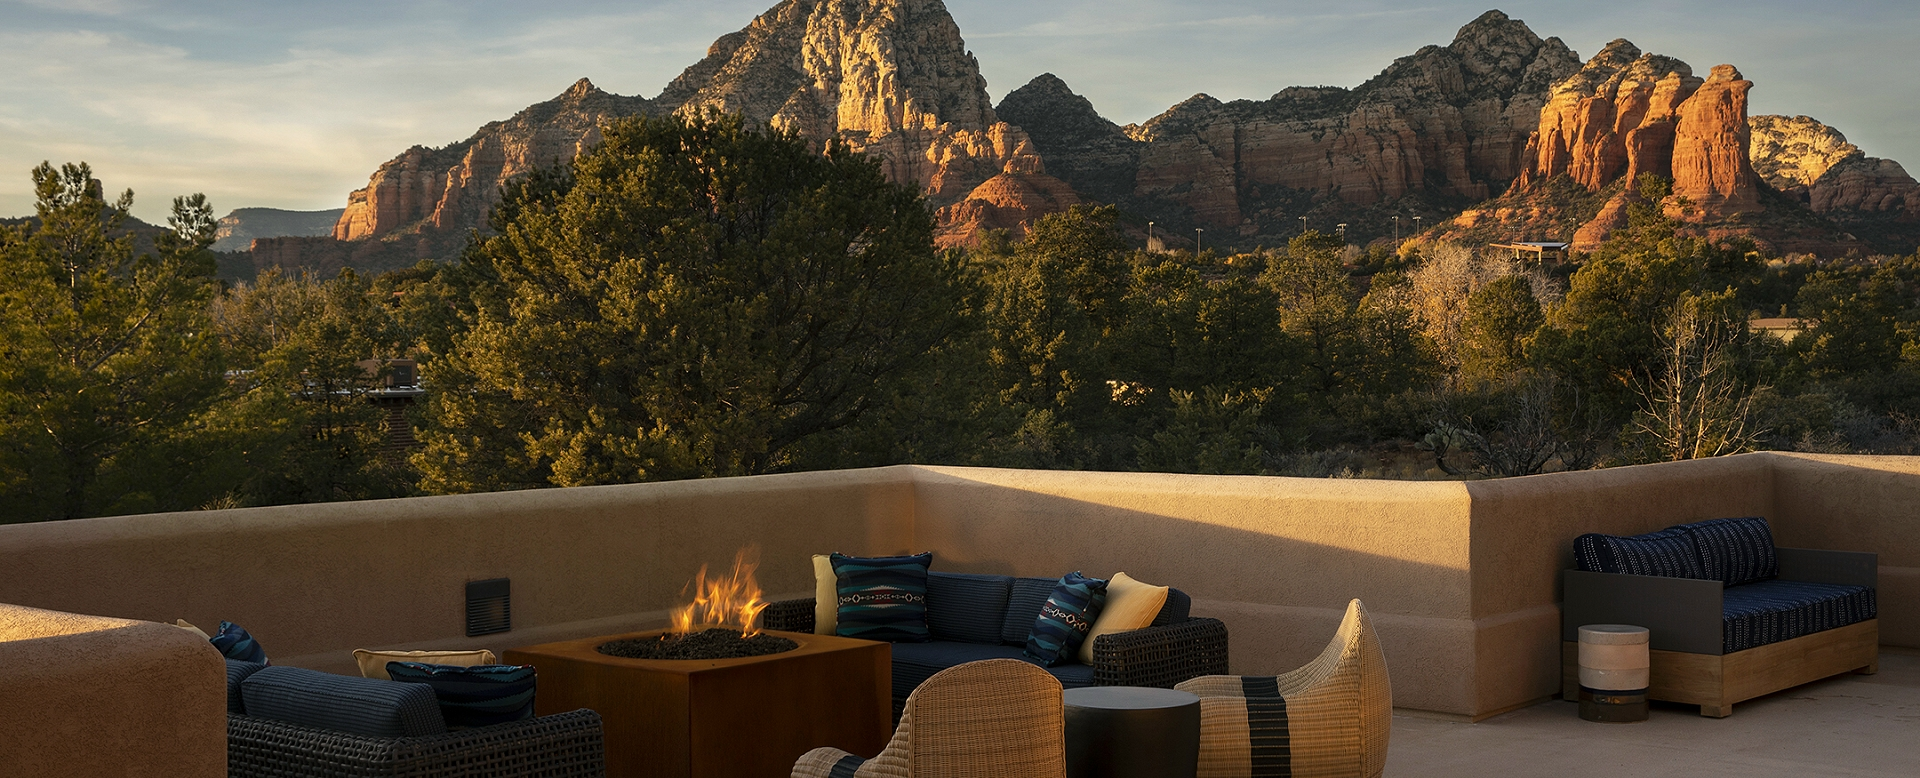 Sky Rock Inn of Sedona-terrace seating and red rocks